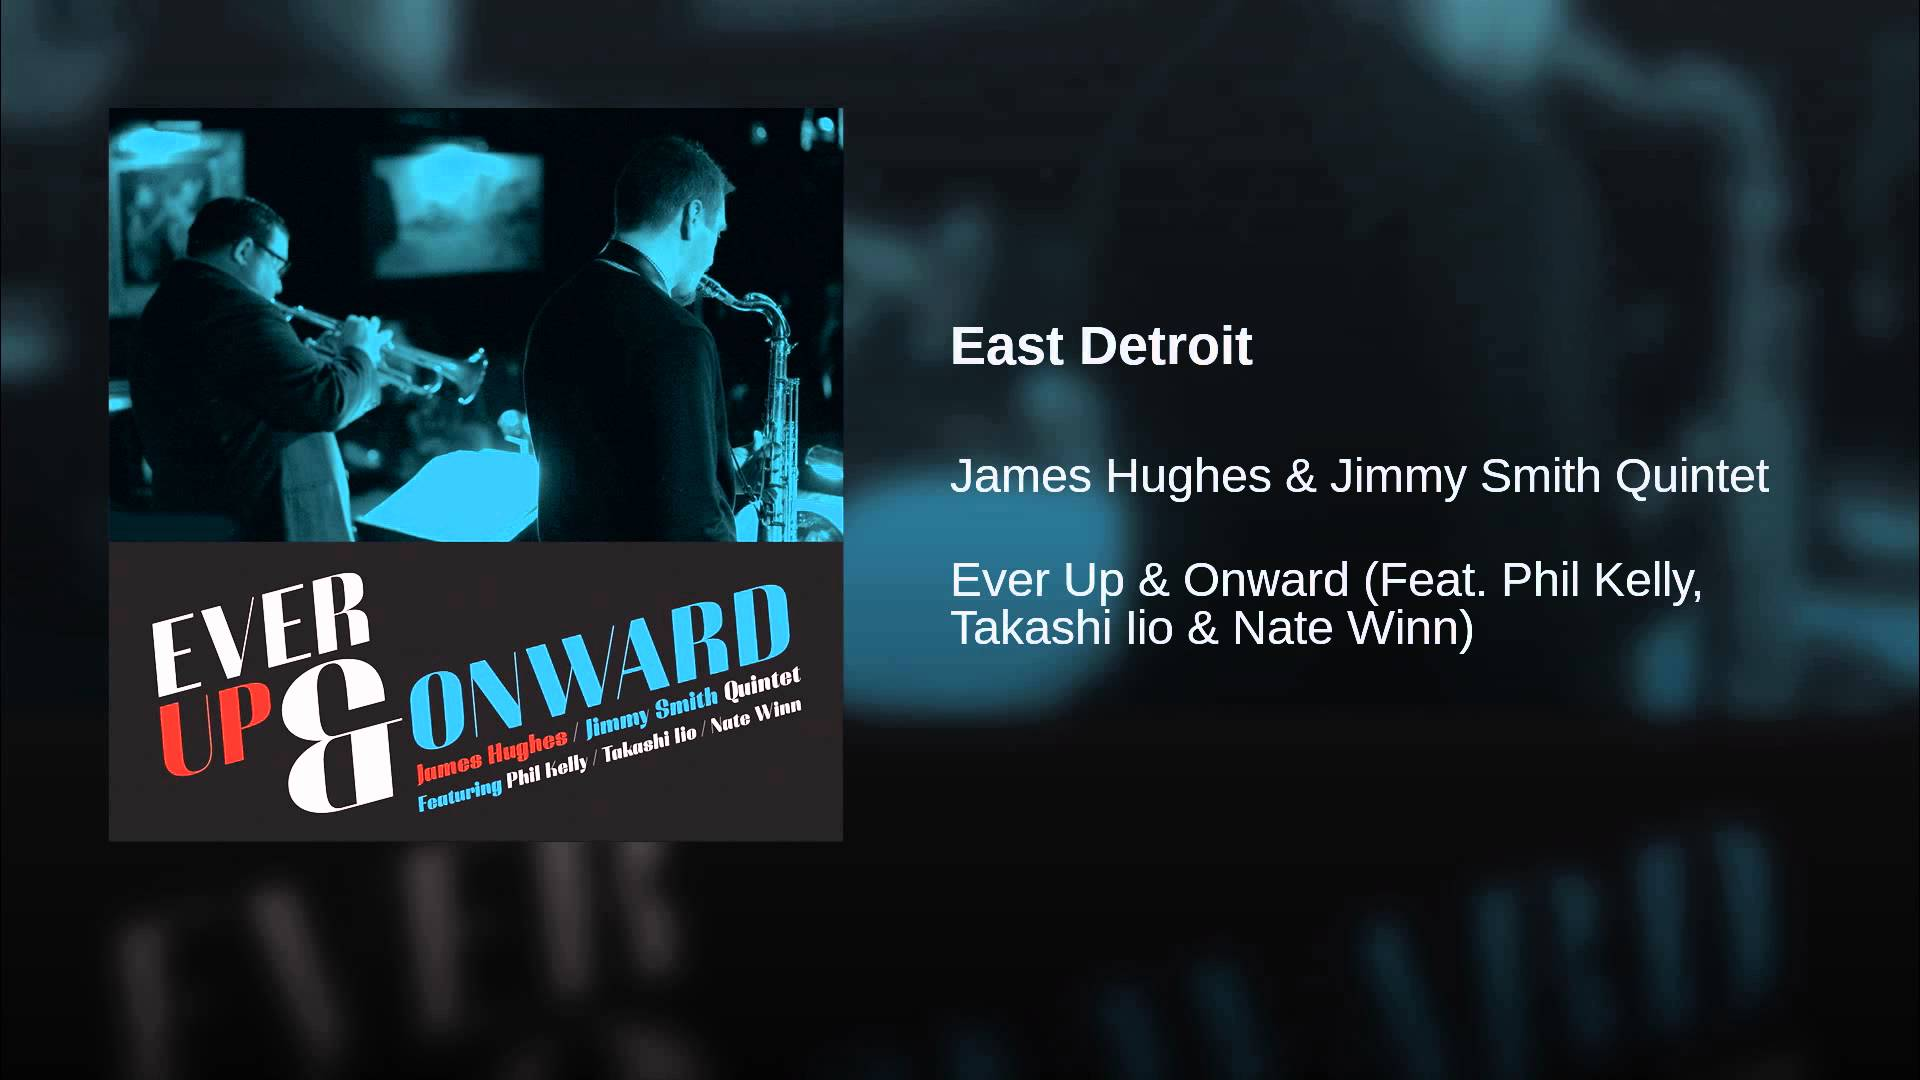 Hughes-Smith Quintet climbs 'Ever Up & Onward' for modern Detroit post-bop jazz